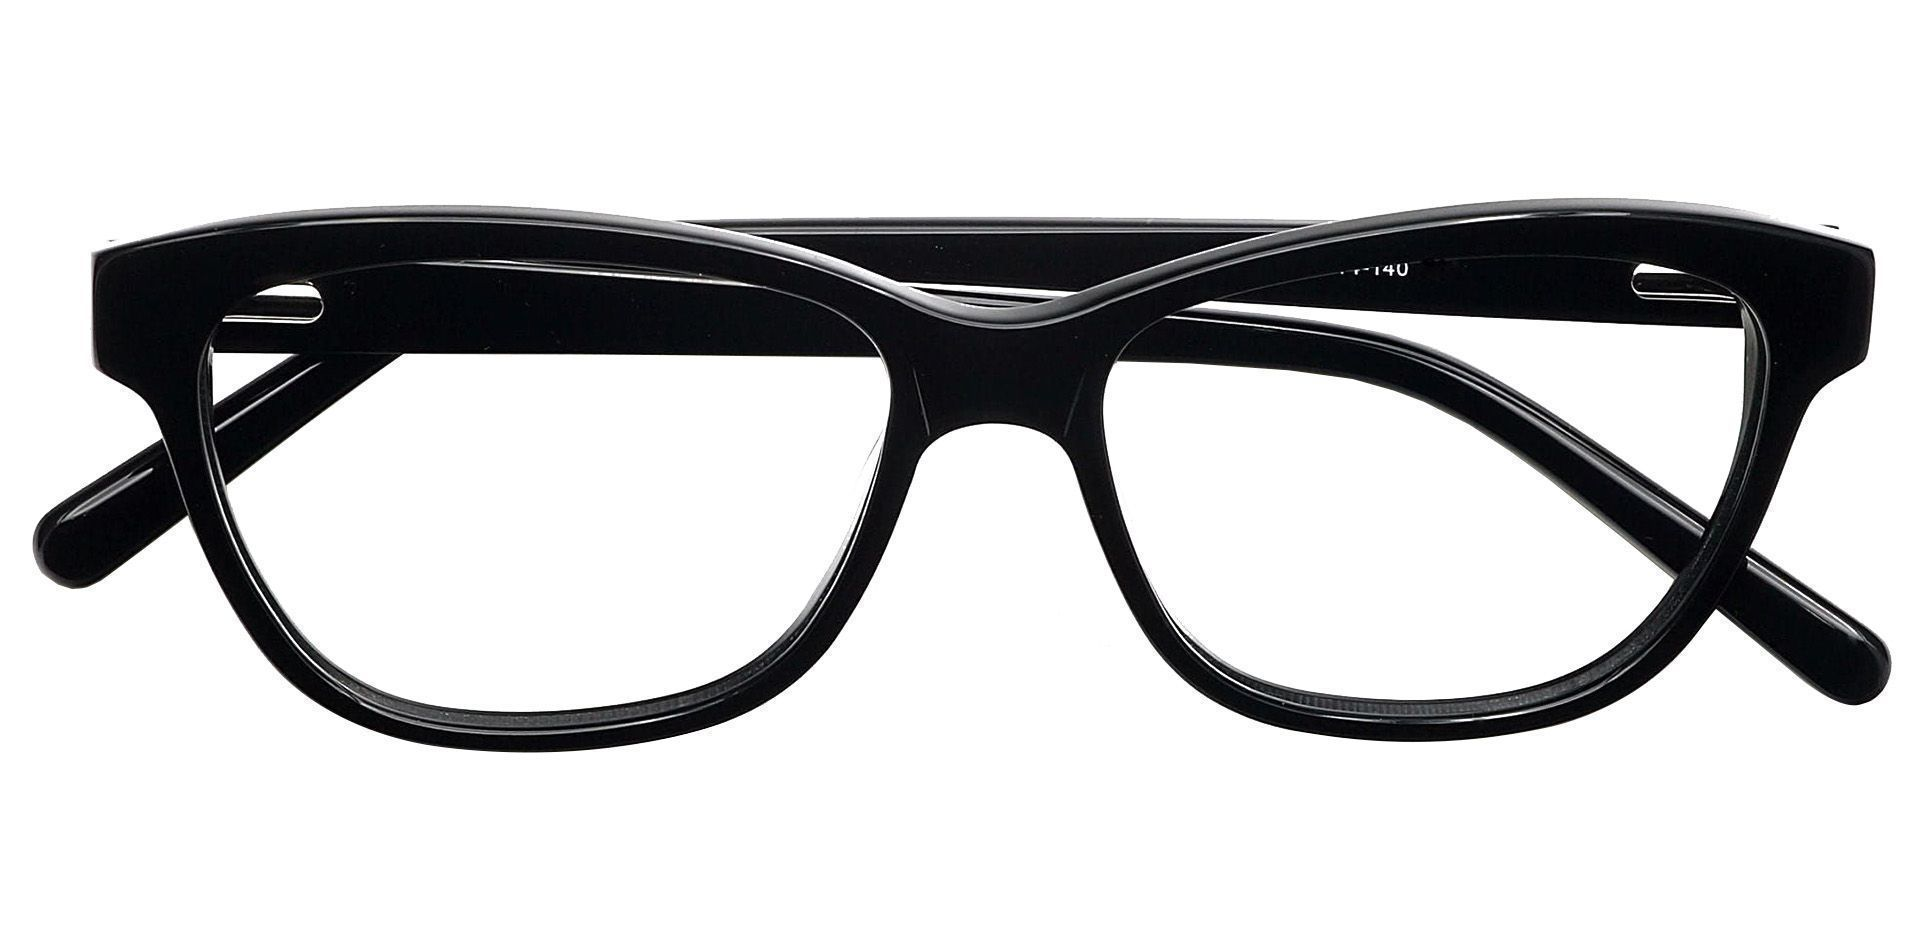 Swell Cat-eye Reading Glasses - Black